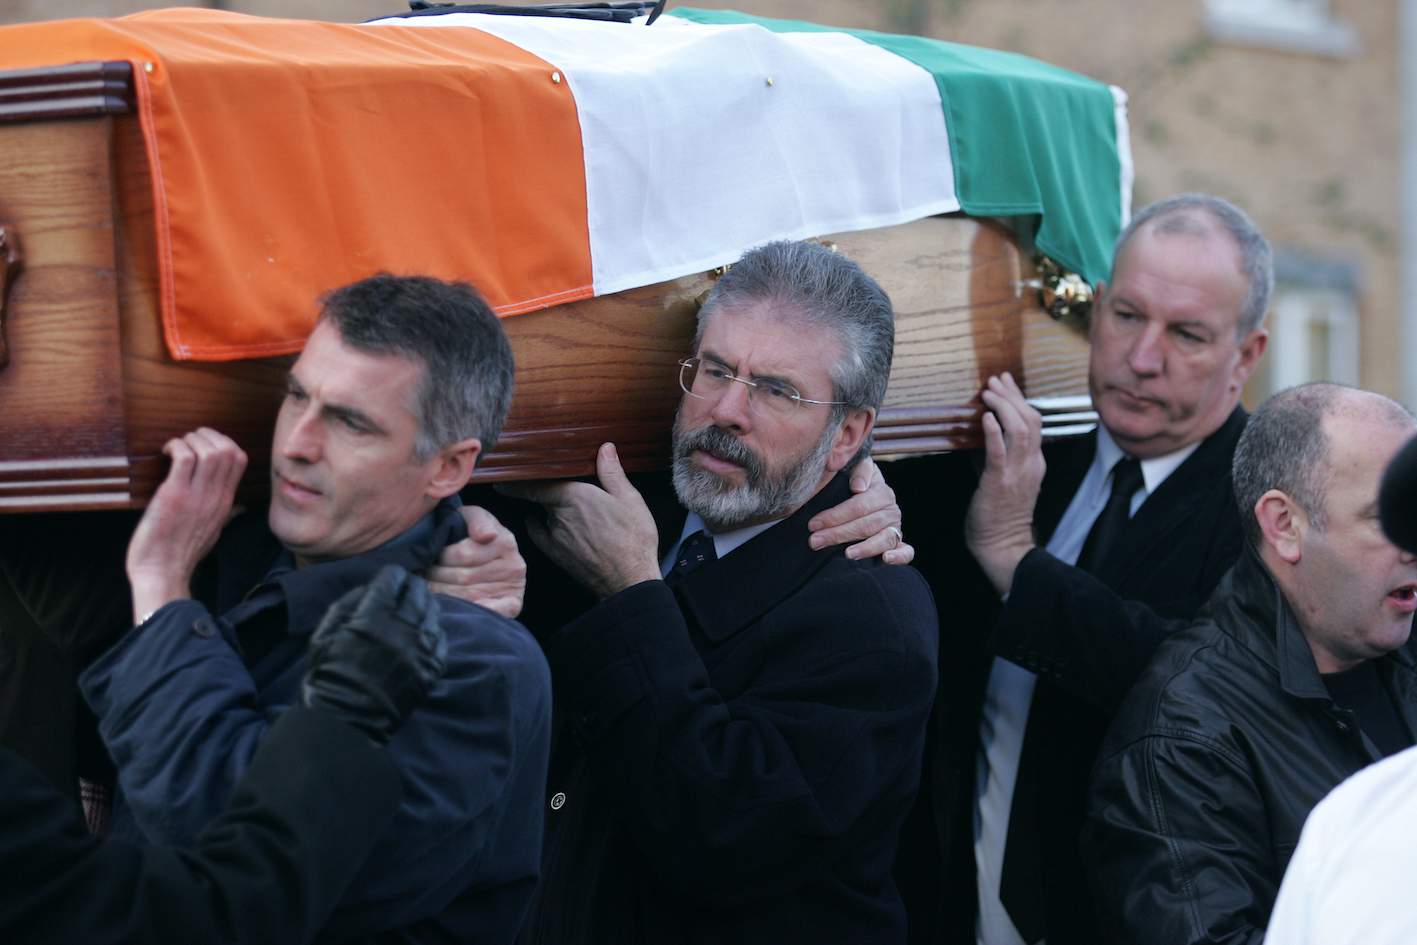 TRIBUTE: Gerry Adams and Bobby Storey (back) help shoulder the coffin of republican activist Martin Meehan in 2007.